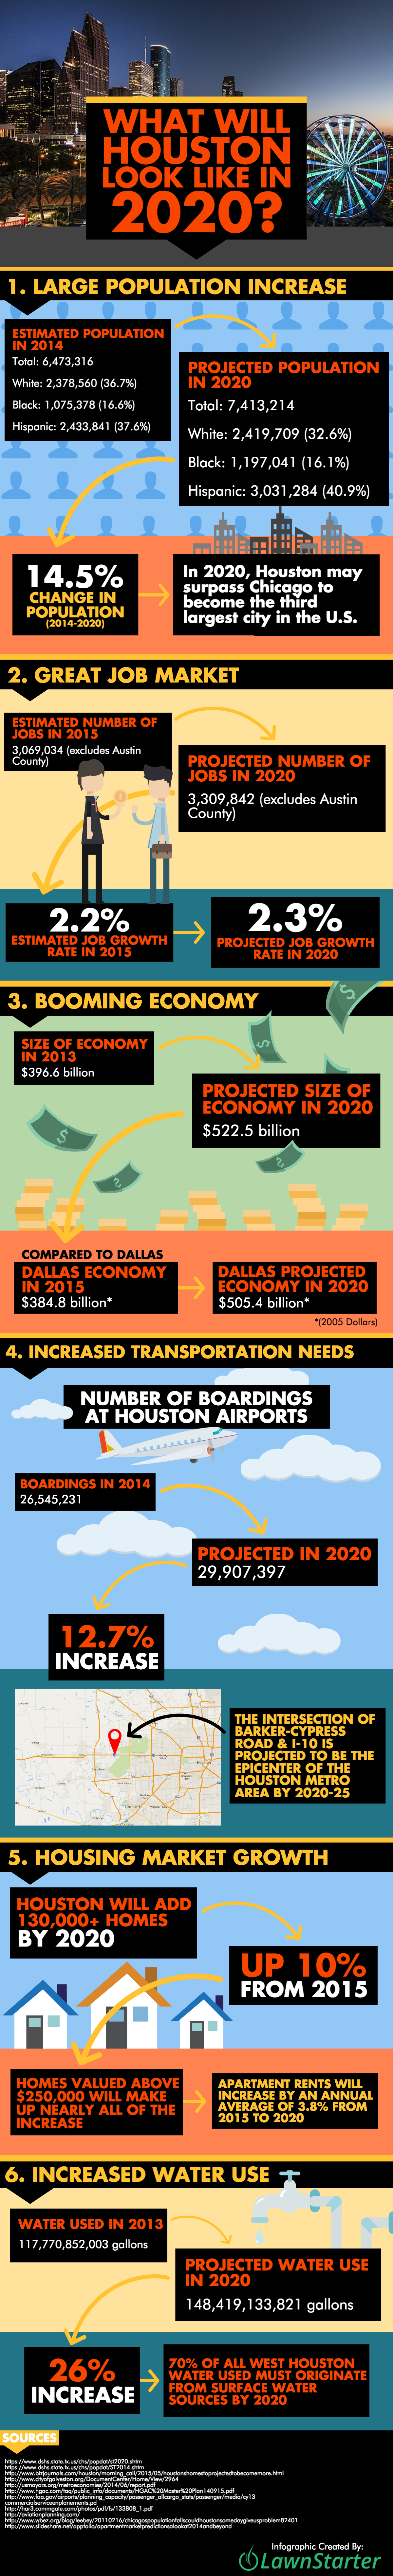 What Will Houston Look Like in 2020? by Lawnstarter